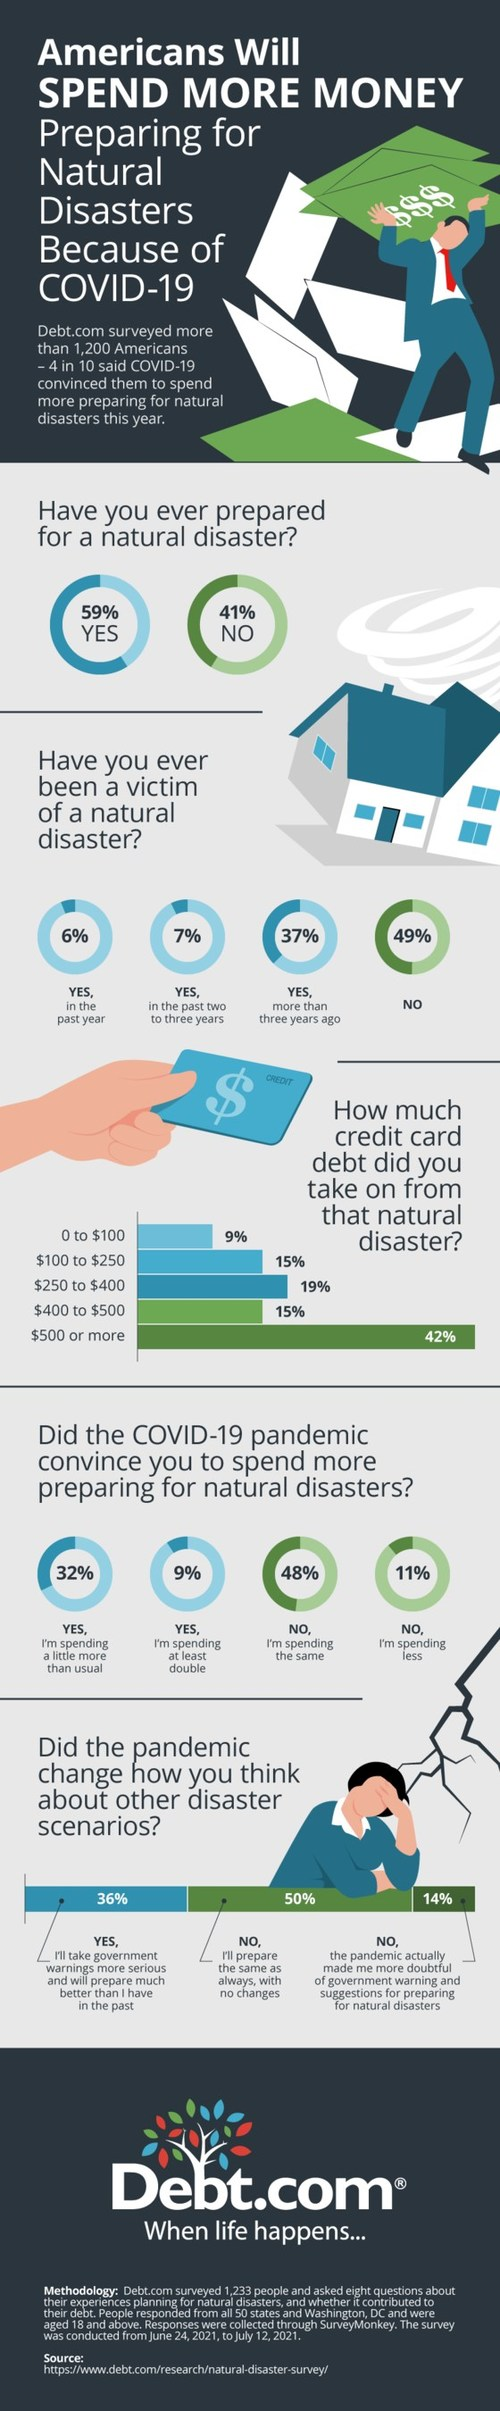 """A new Debt.com survey shows the pandemic has raised security concerns – and not just from health scares. About a third of Americans will spend more to prepare for natural disasters this year over last year, and they cite COVID-19 as the reason. Debt.com's Natural Disaster Survey not only revealed that Americans will be spending more money, they'll also be paying more attention. More than 35% said the pandemic has convinced them to """"take government warnings more seriously."""""""